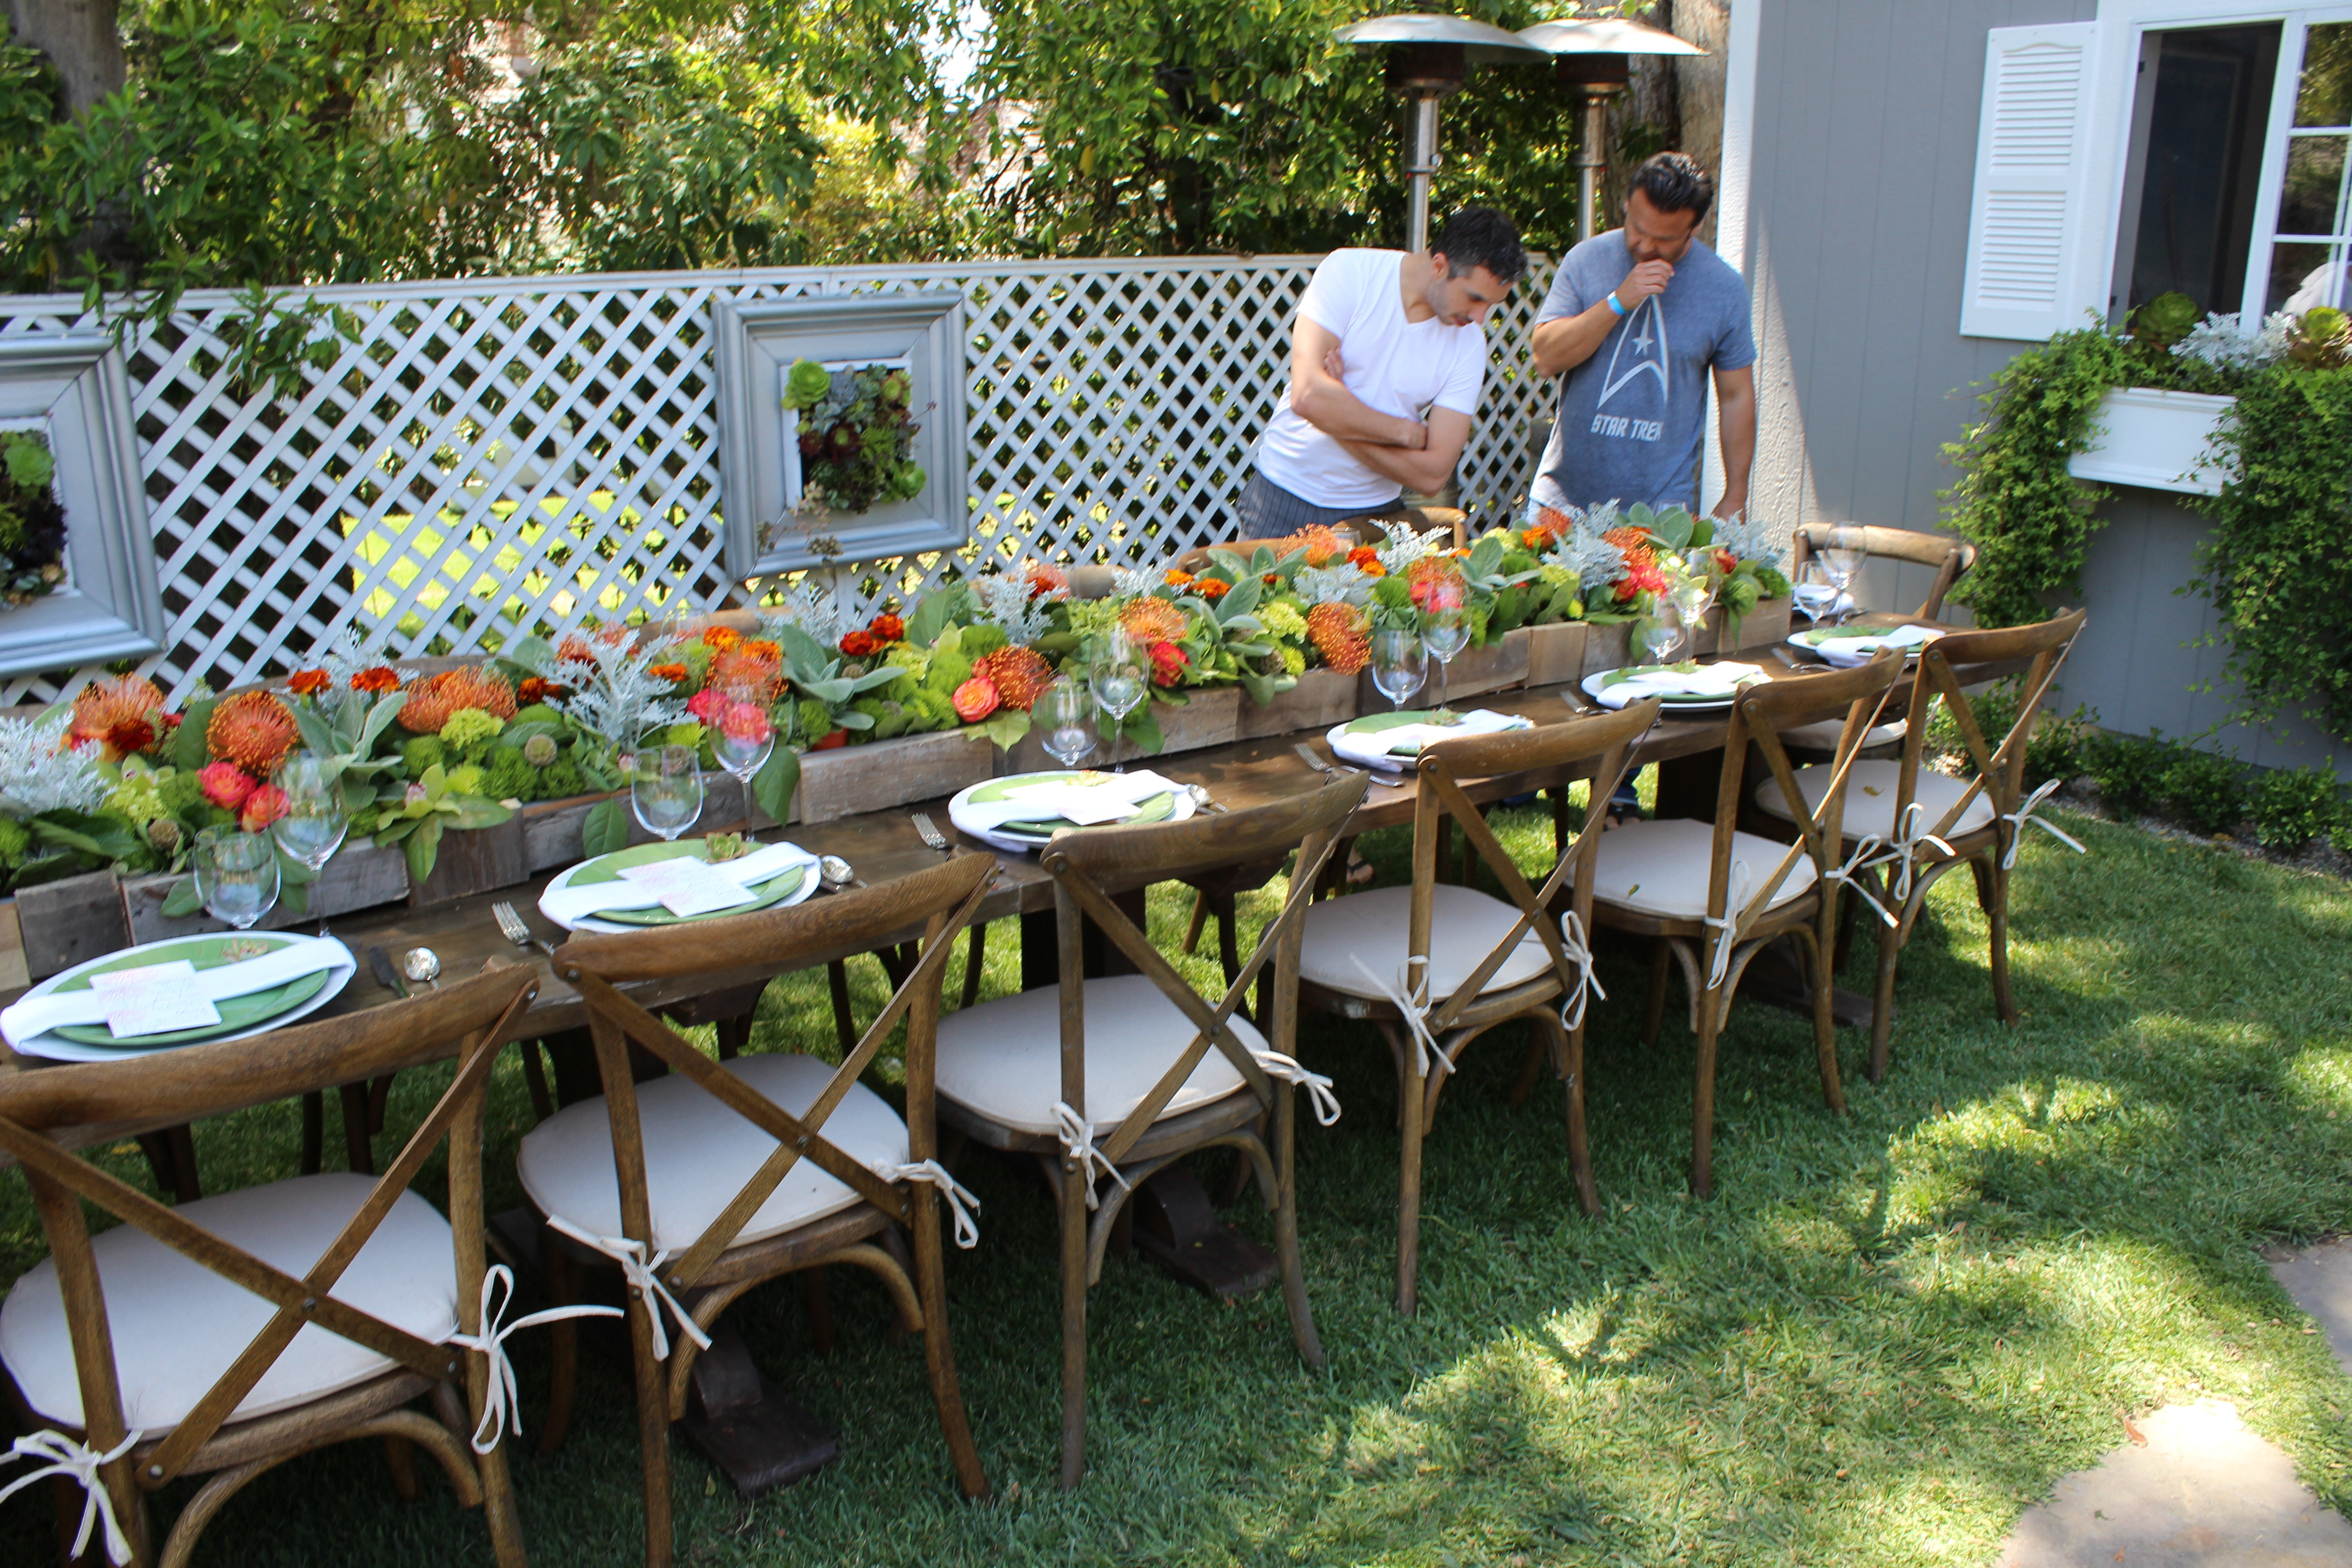 Backyard Party Seating Ideas  Plan an Outdoor Garden Party